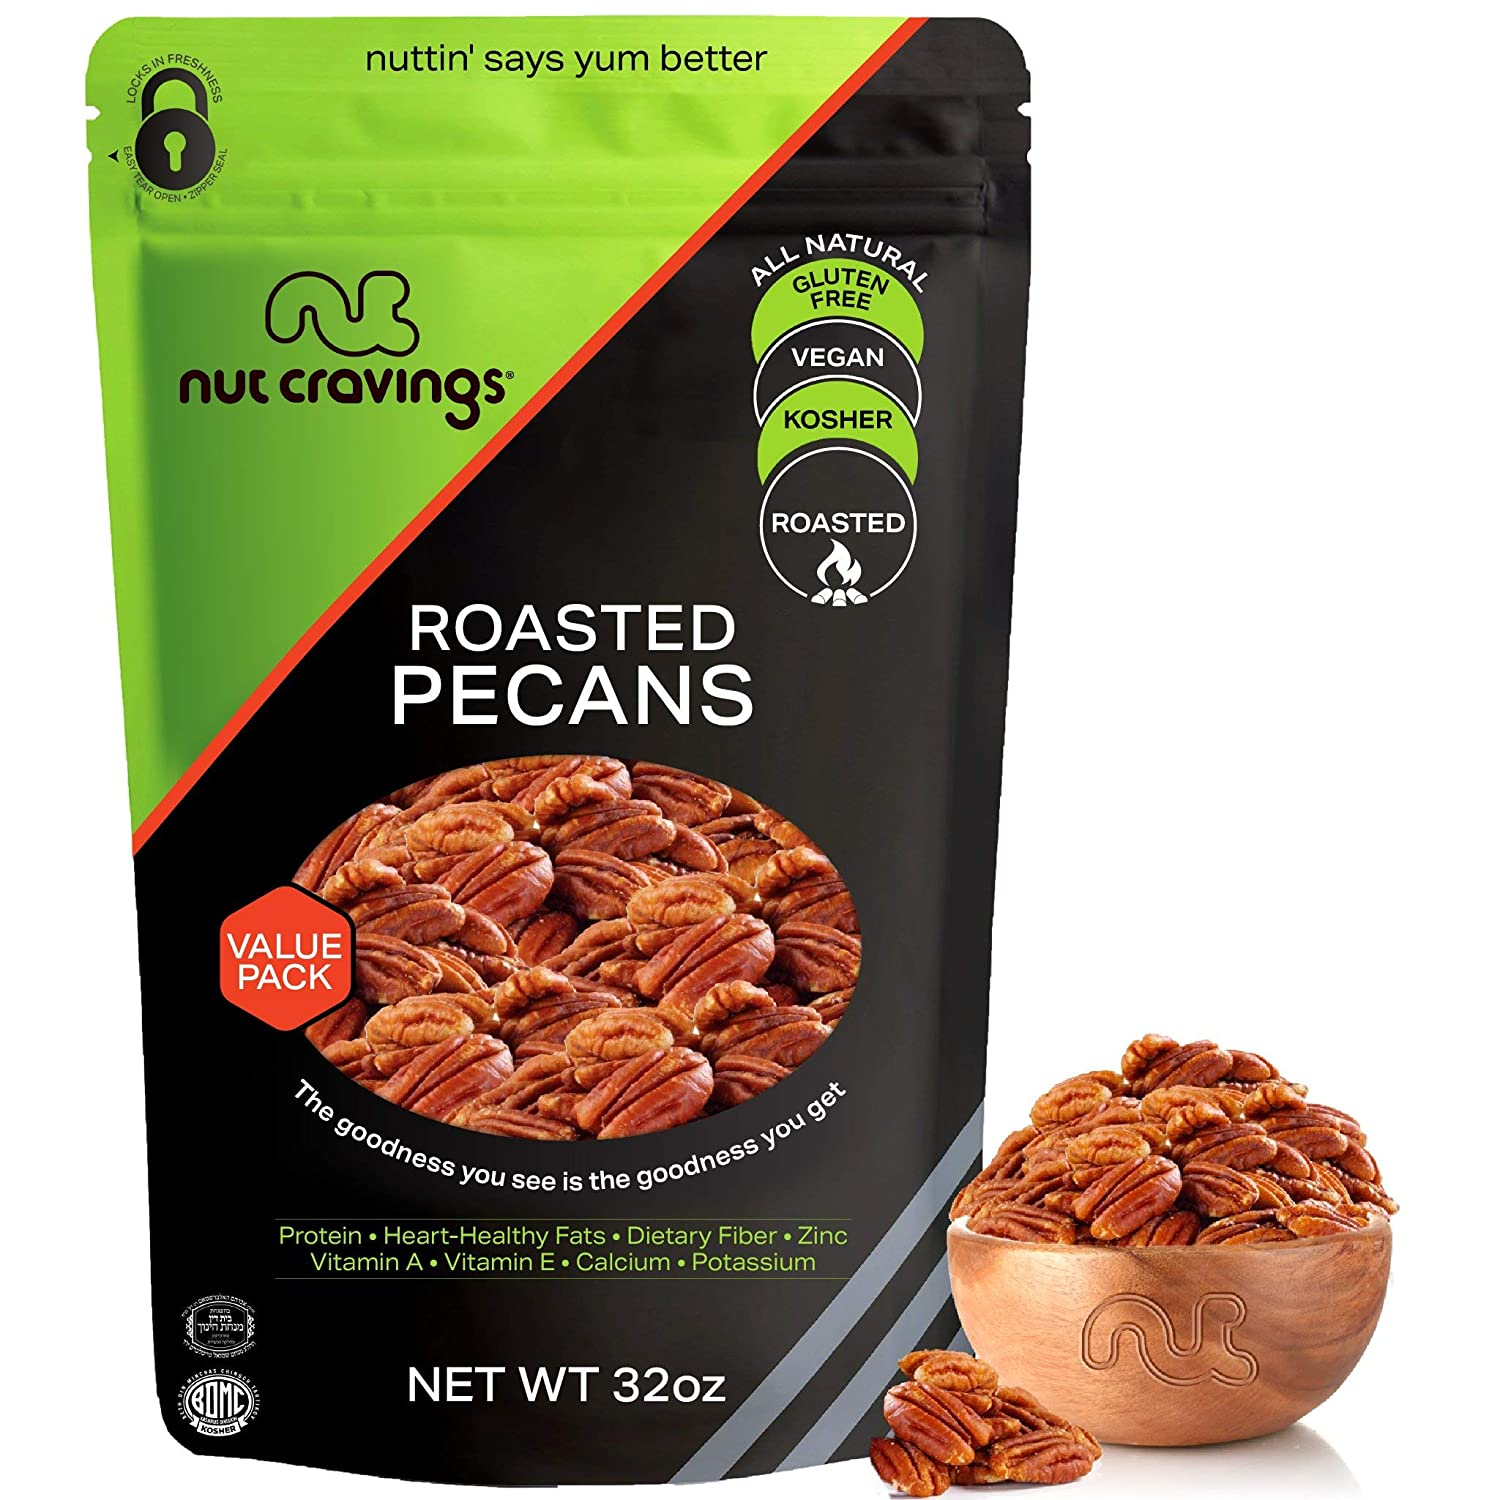 Georgia Pecan Halves, Roasted & Unsalted, No Shell (32oz - 2 Pound) Packed Fresh in Resealable Bag - Nut Trail Mix Snack - Healthy Protein Food, All Natural, Keto Friendly, Vegan, Kosher